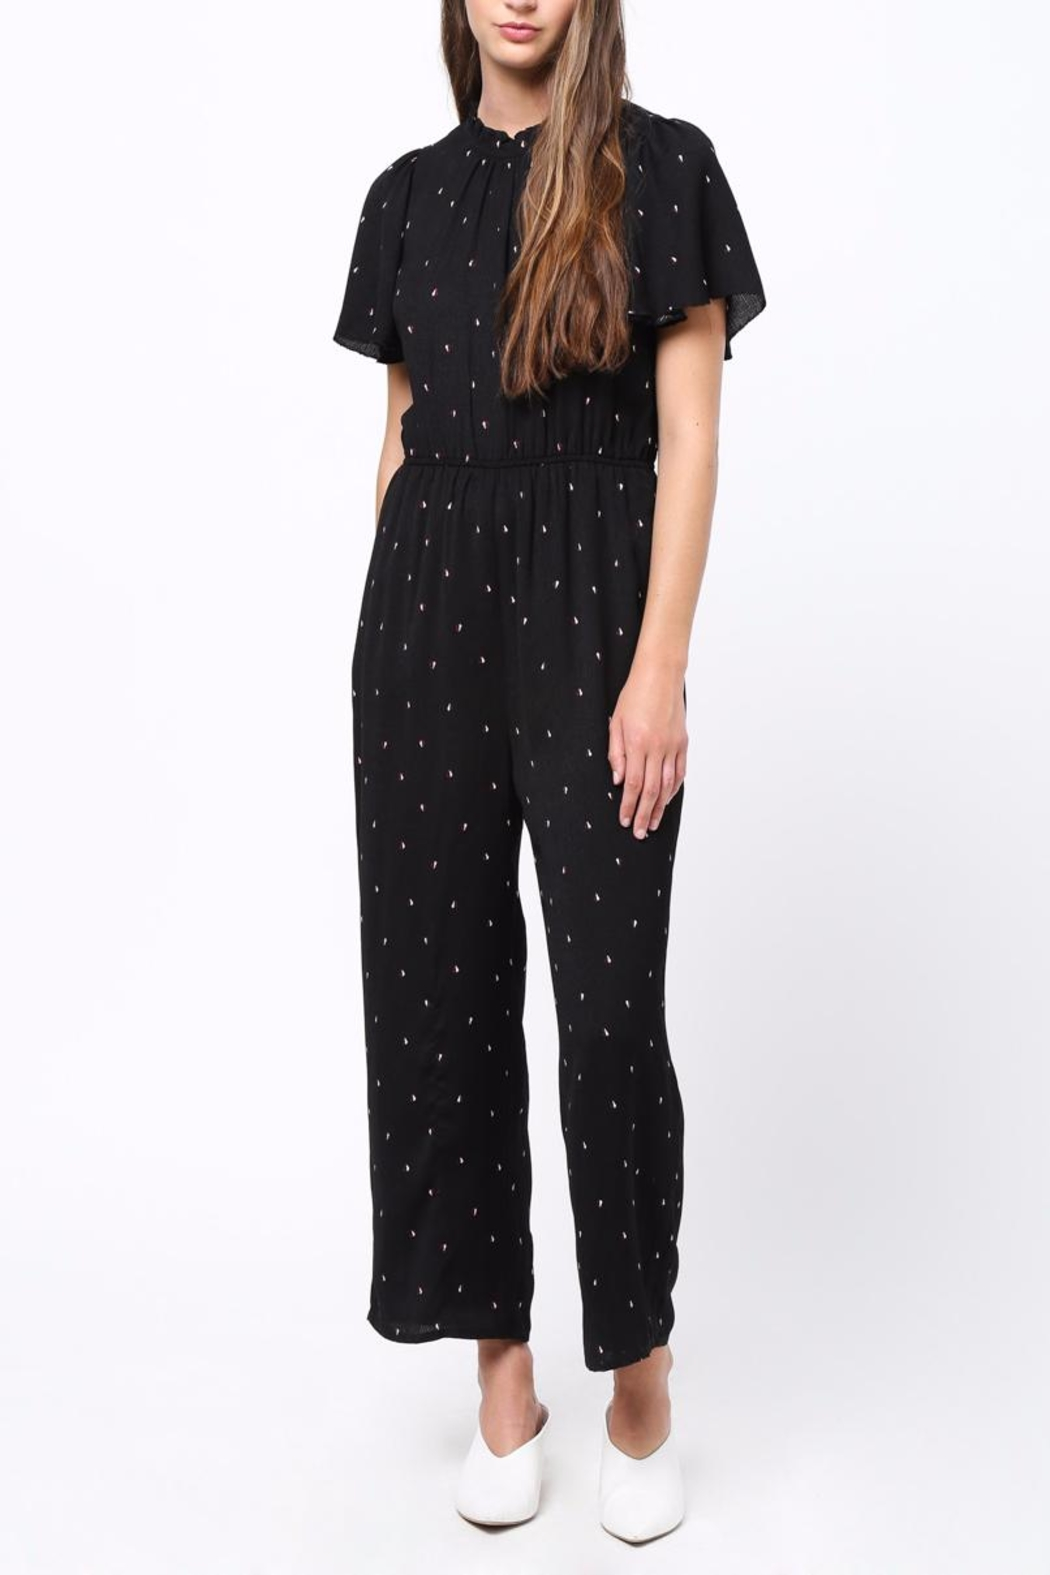 Movint Fuffled Sleeve Jumpsuit - Main Image